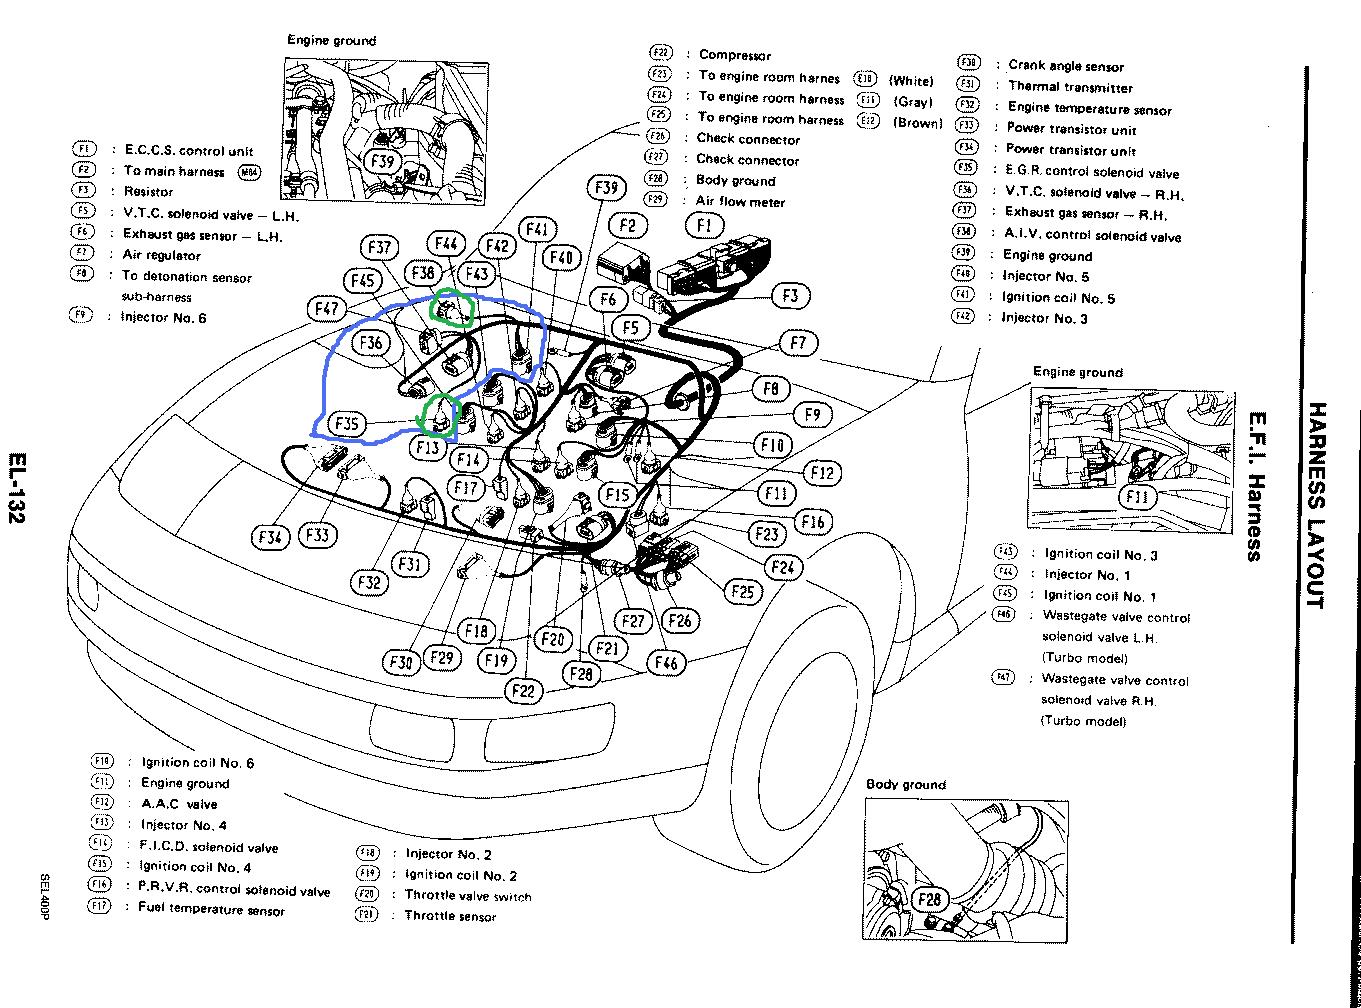 hight resolution of 300zx wiring harness diagram nissan 300zx engine harness blog 300zx wiring harness replacement 300zx wiring harness